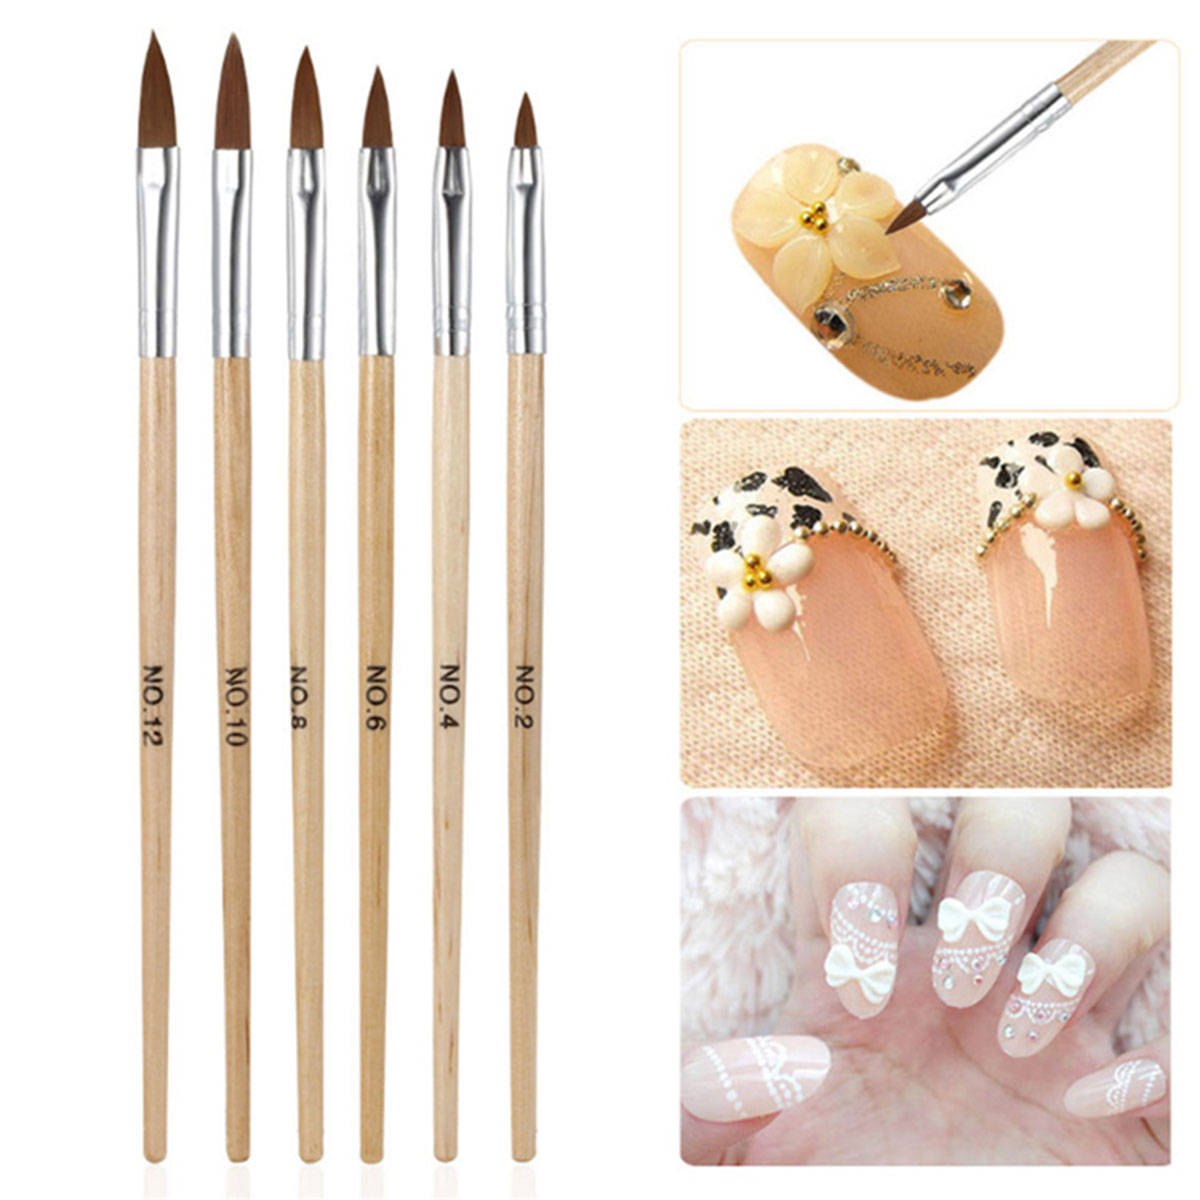 Professional Round Sable Acrylic Nail Art Brush Various Size 2 4 6 8 10 12 14